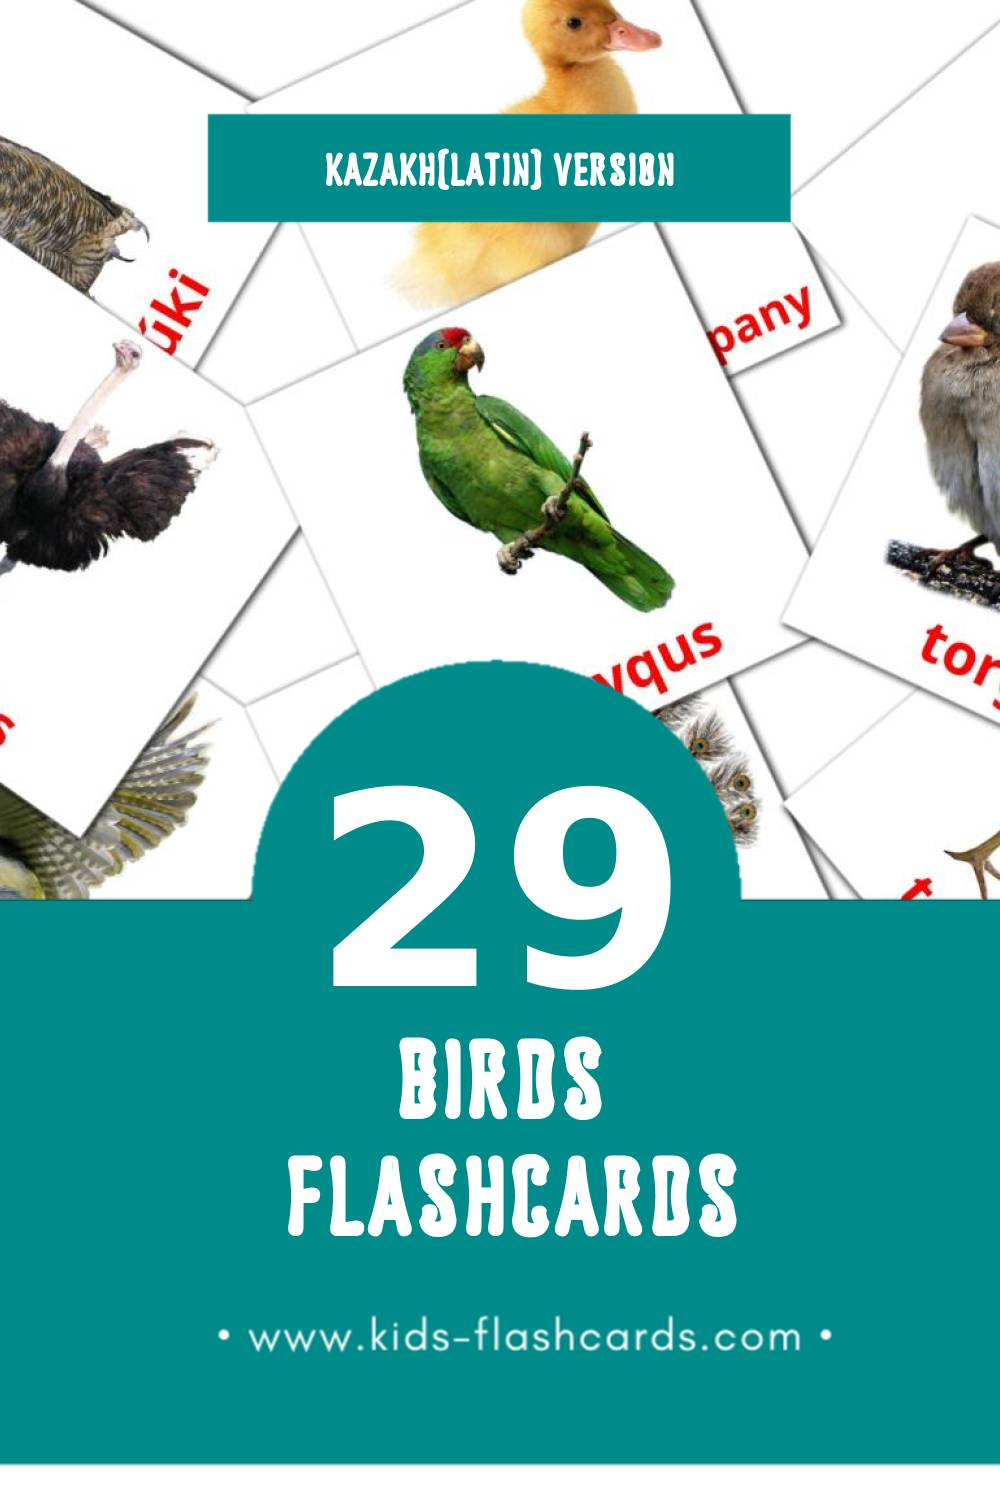 Visual KÝS Flashcards for Toddlers (27 cards in Kazakh(latin))